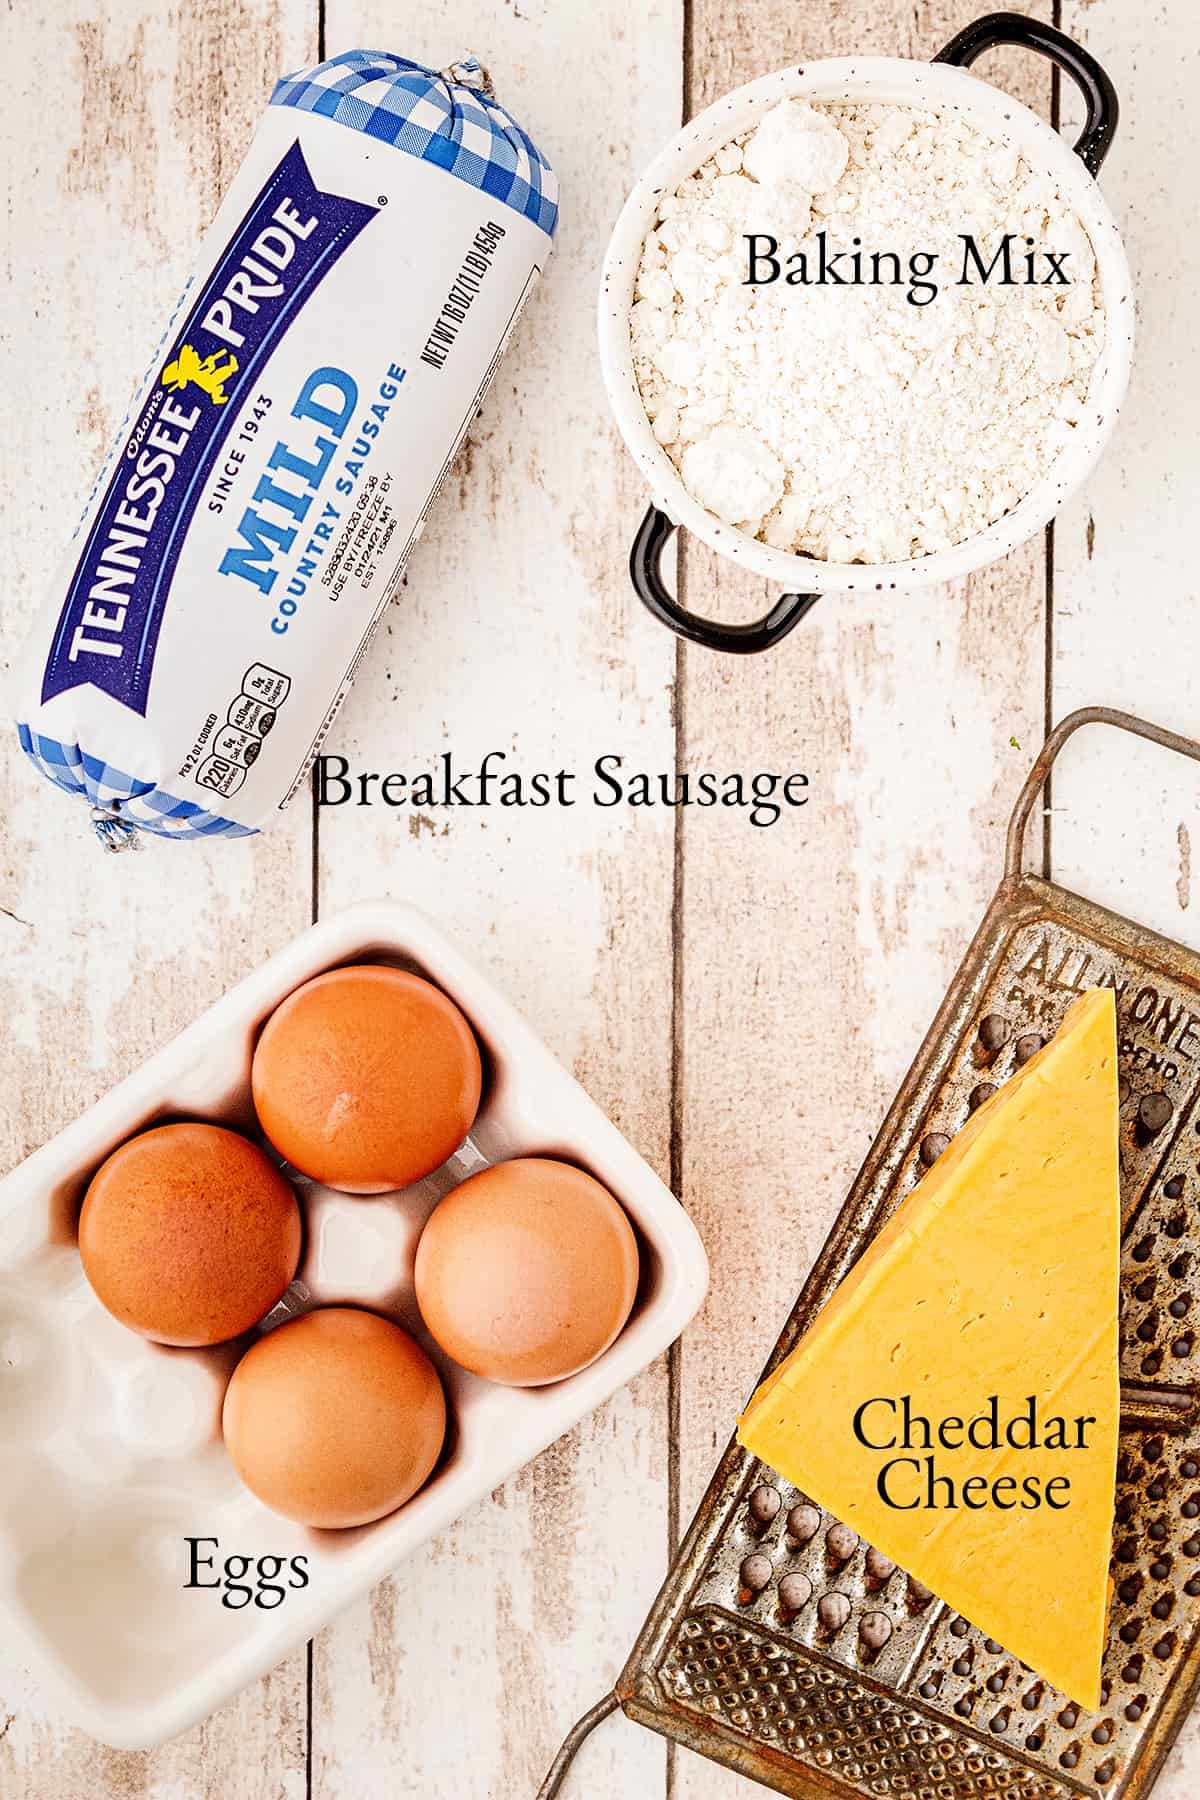 Ingredients needed for the recipe: breakfast sausage, baking mix, eggs, Cheddar cheese